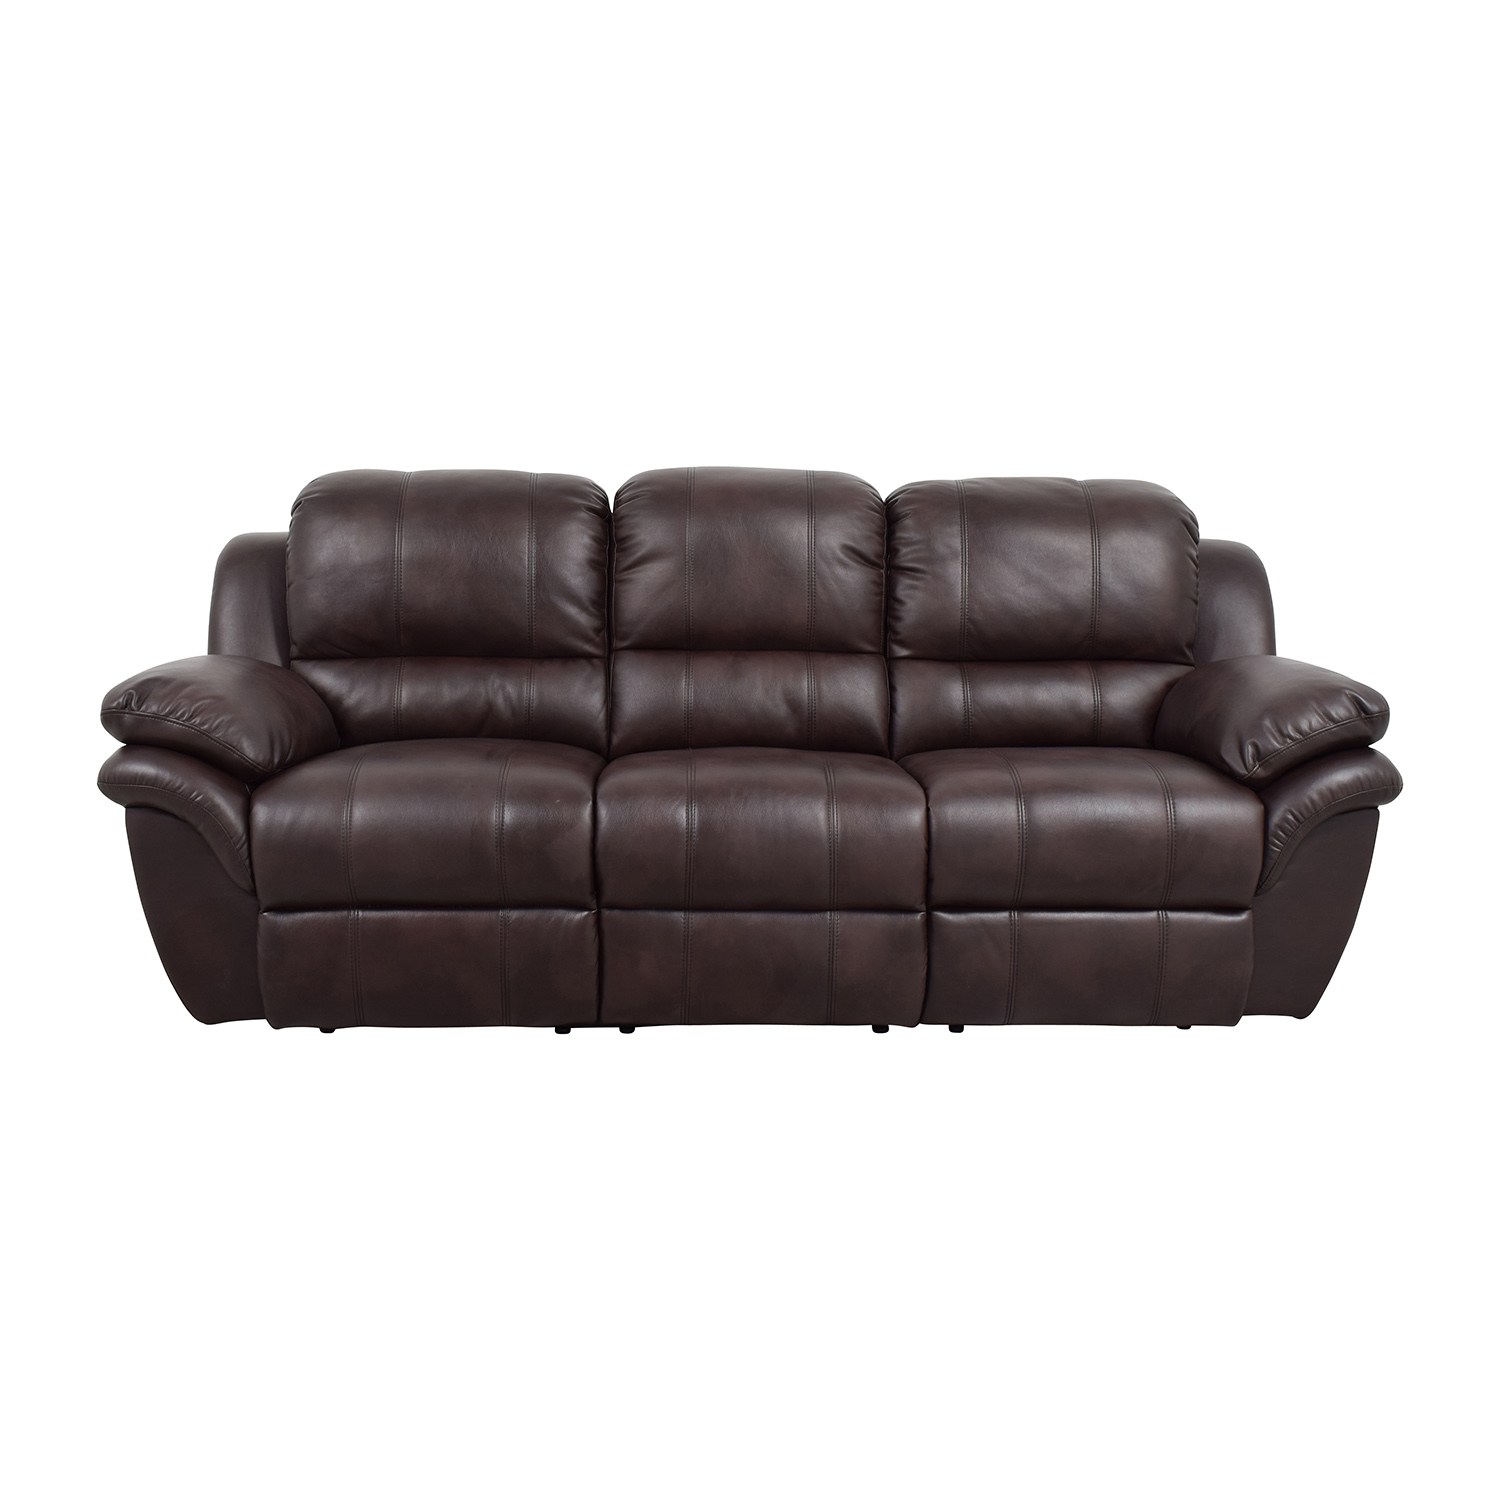 New Classic Home Furnishing New Classic Home Furnishing Leather Reclining Brown Couch nyc